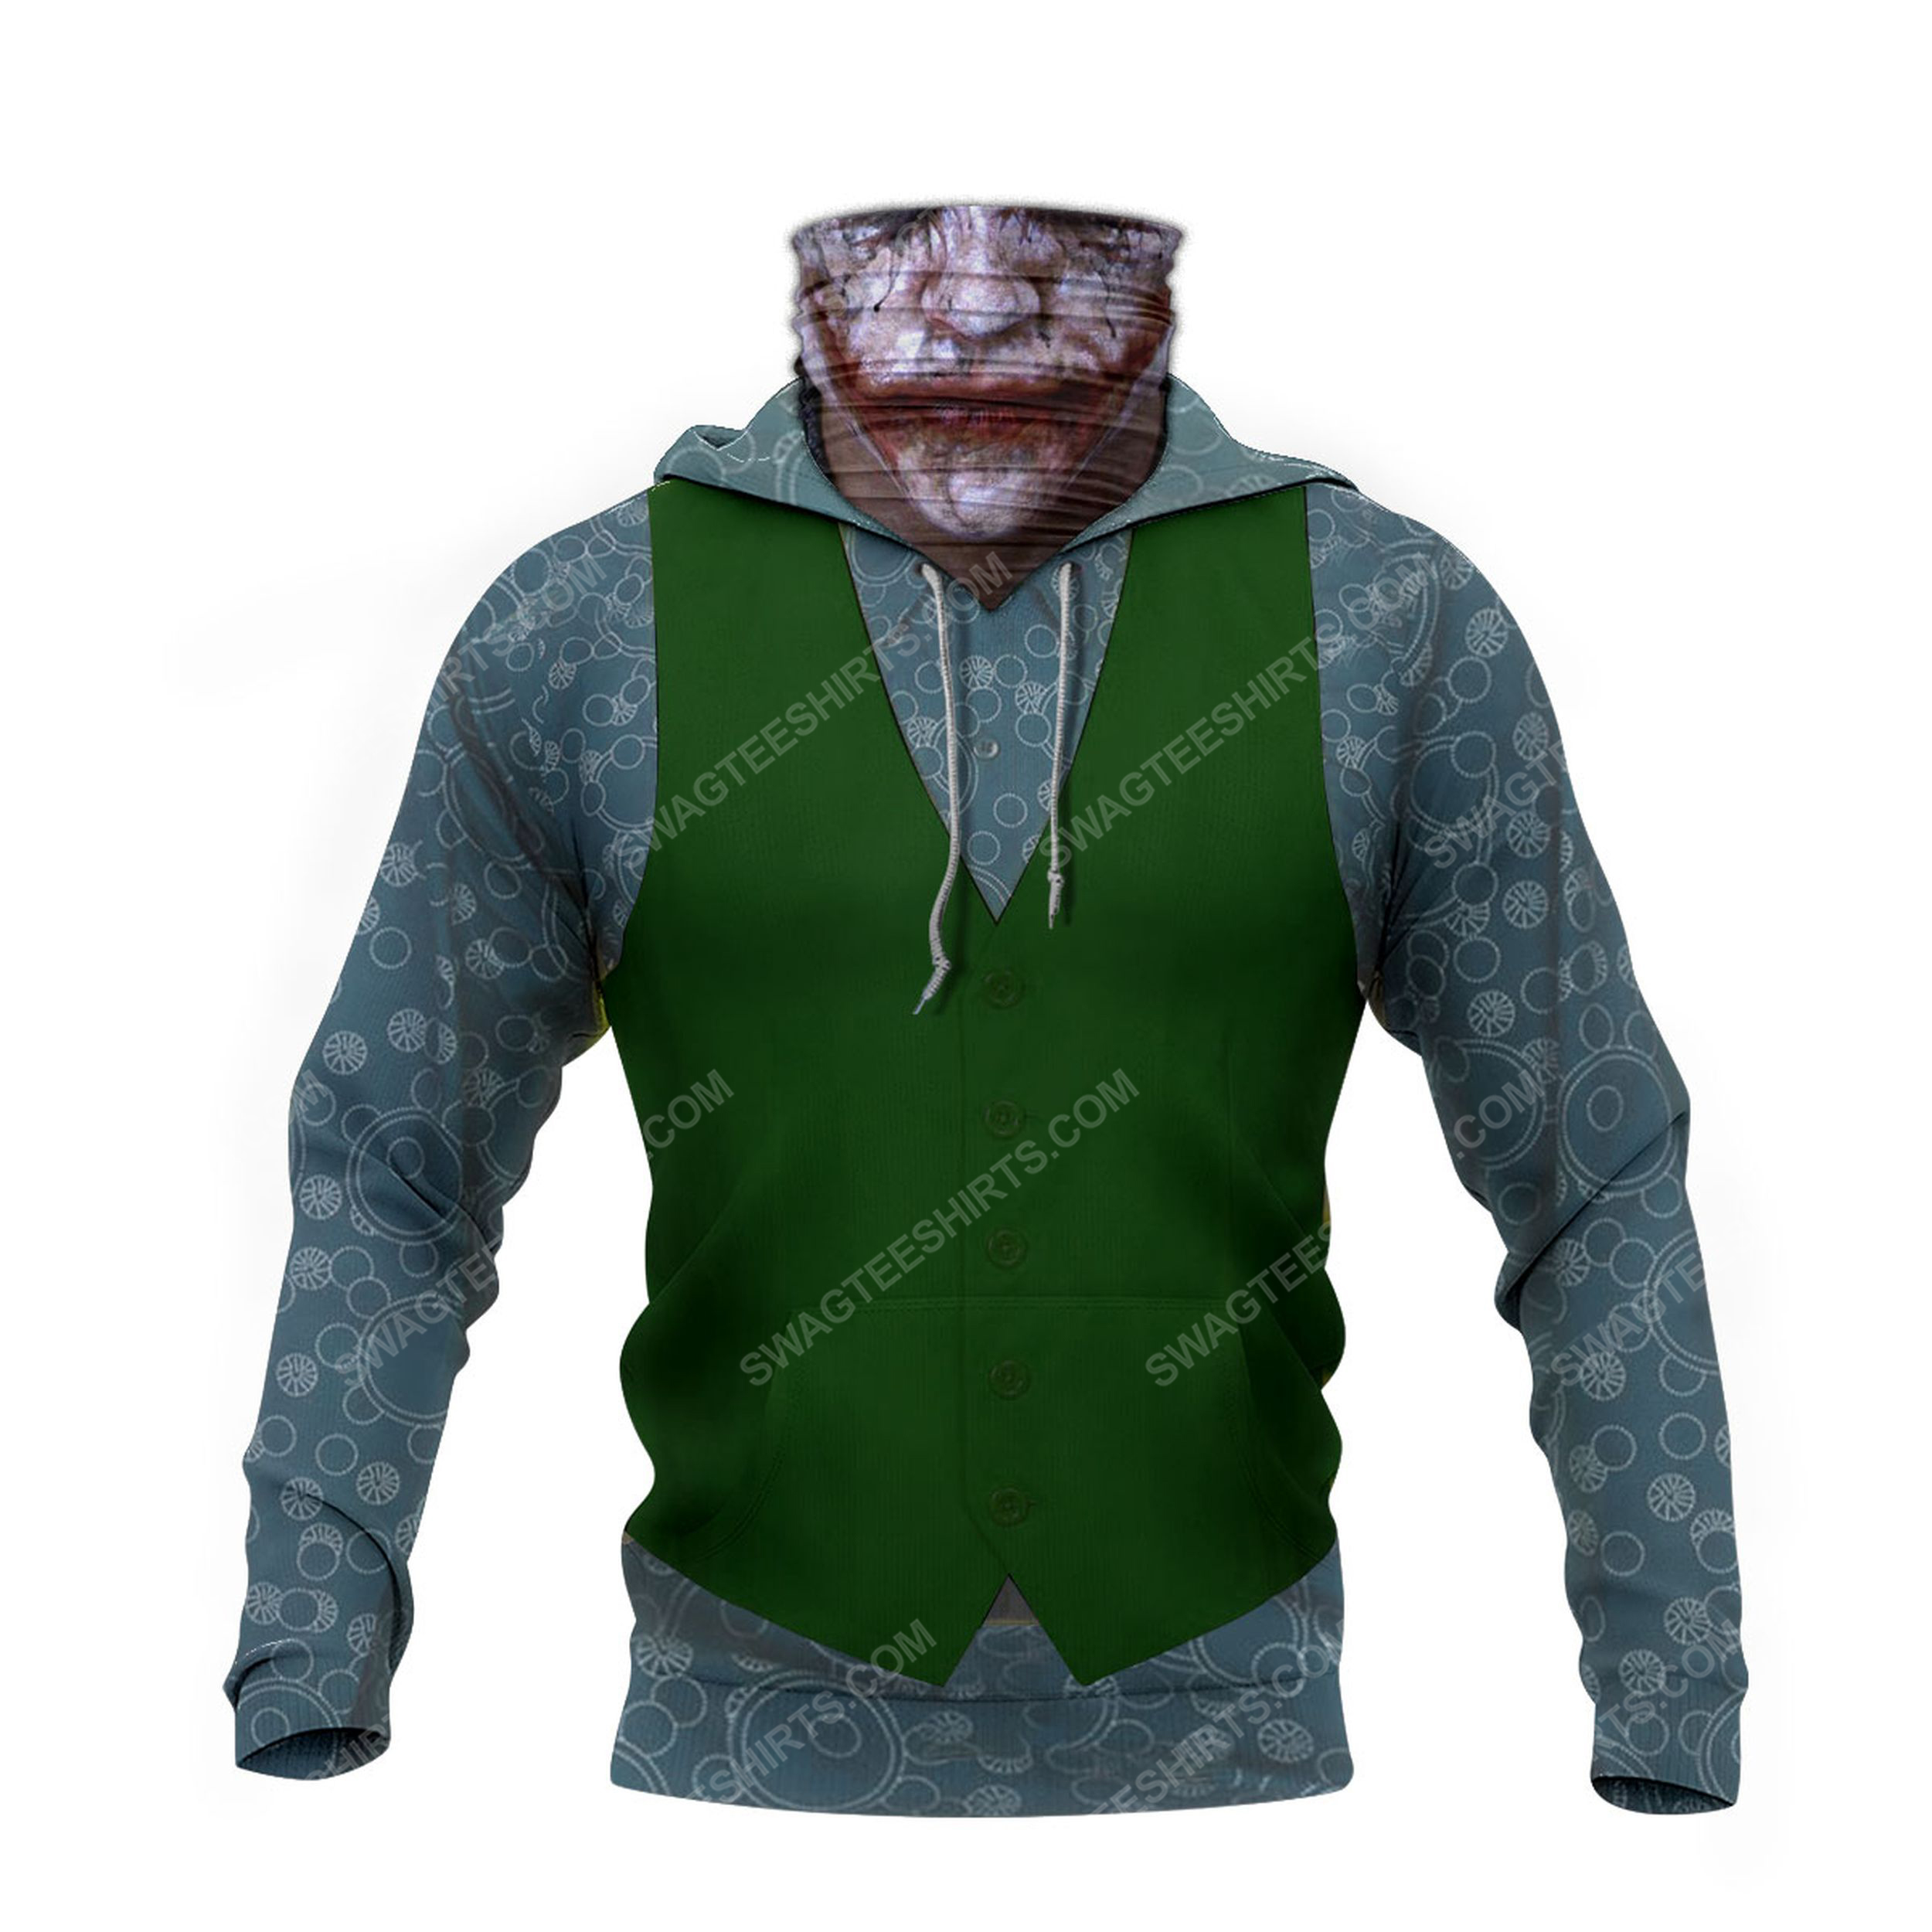 The joker with suit full print mask hoodie 4(1)